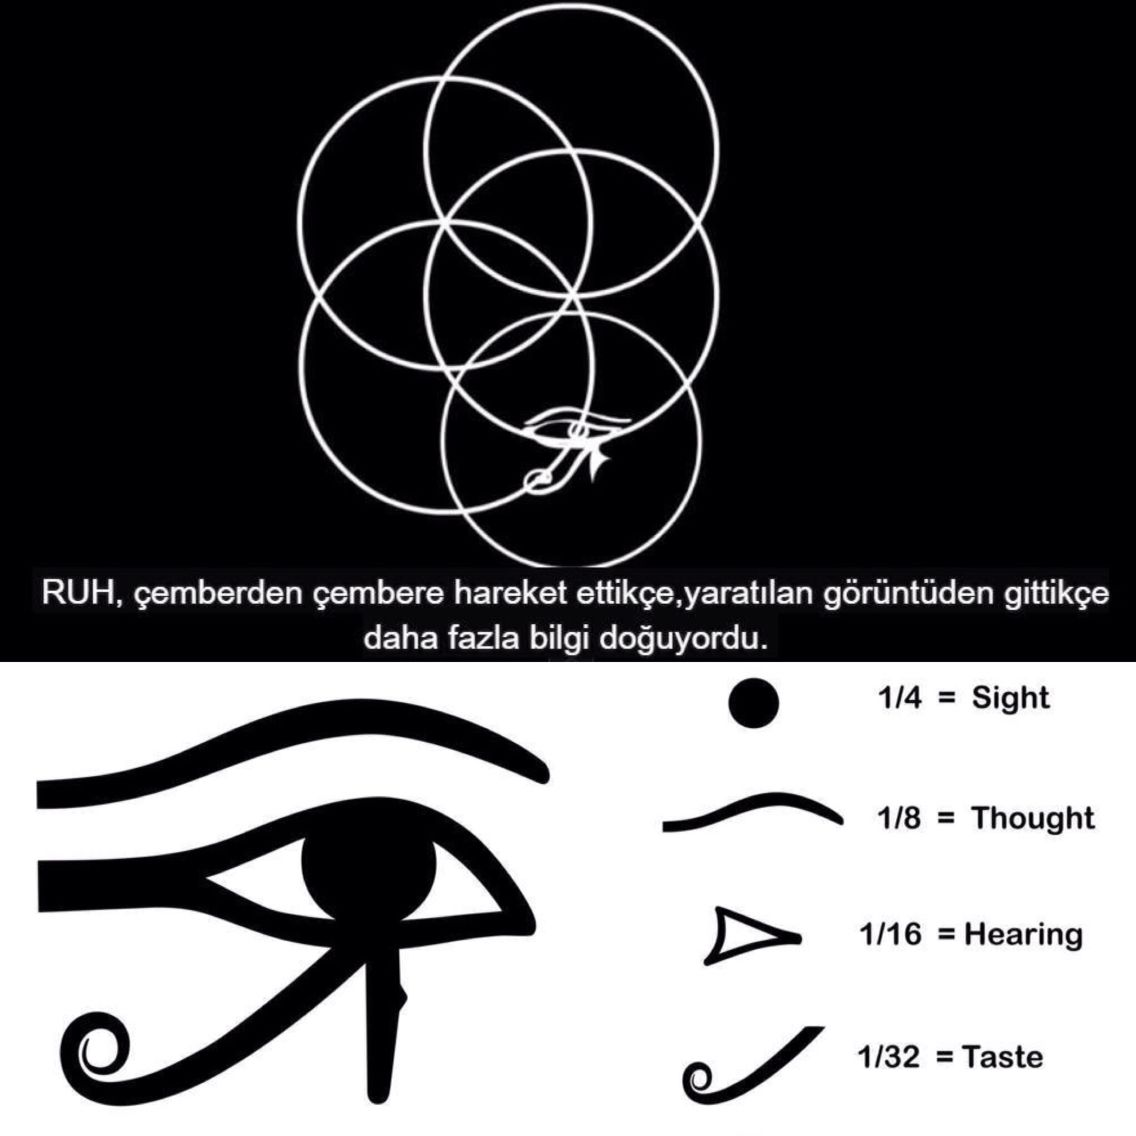 Eye of horustual geometry chart flower of life scale ruh eye of horustual geometry chart flower of life scale ruh soul pineal gland nvjuhfo Image collections